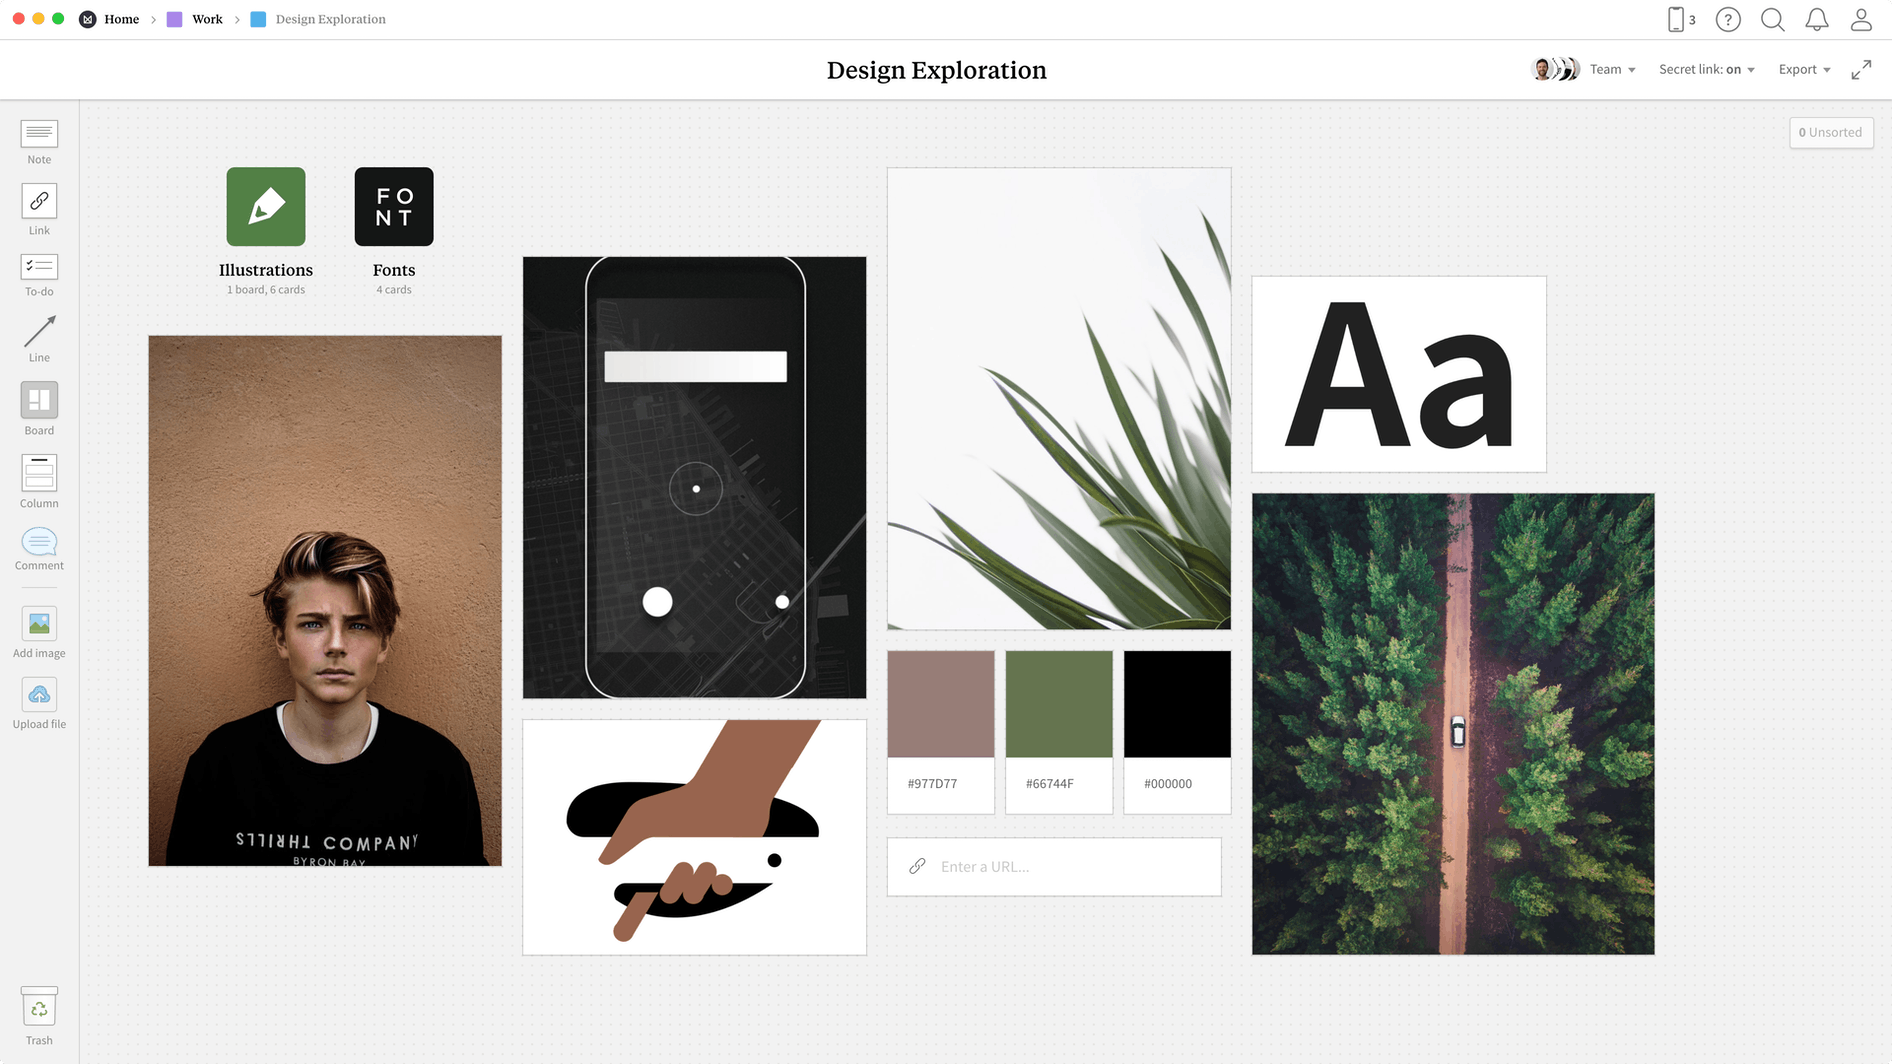 Design Exploration Template, within the Milanote app